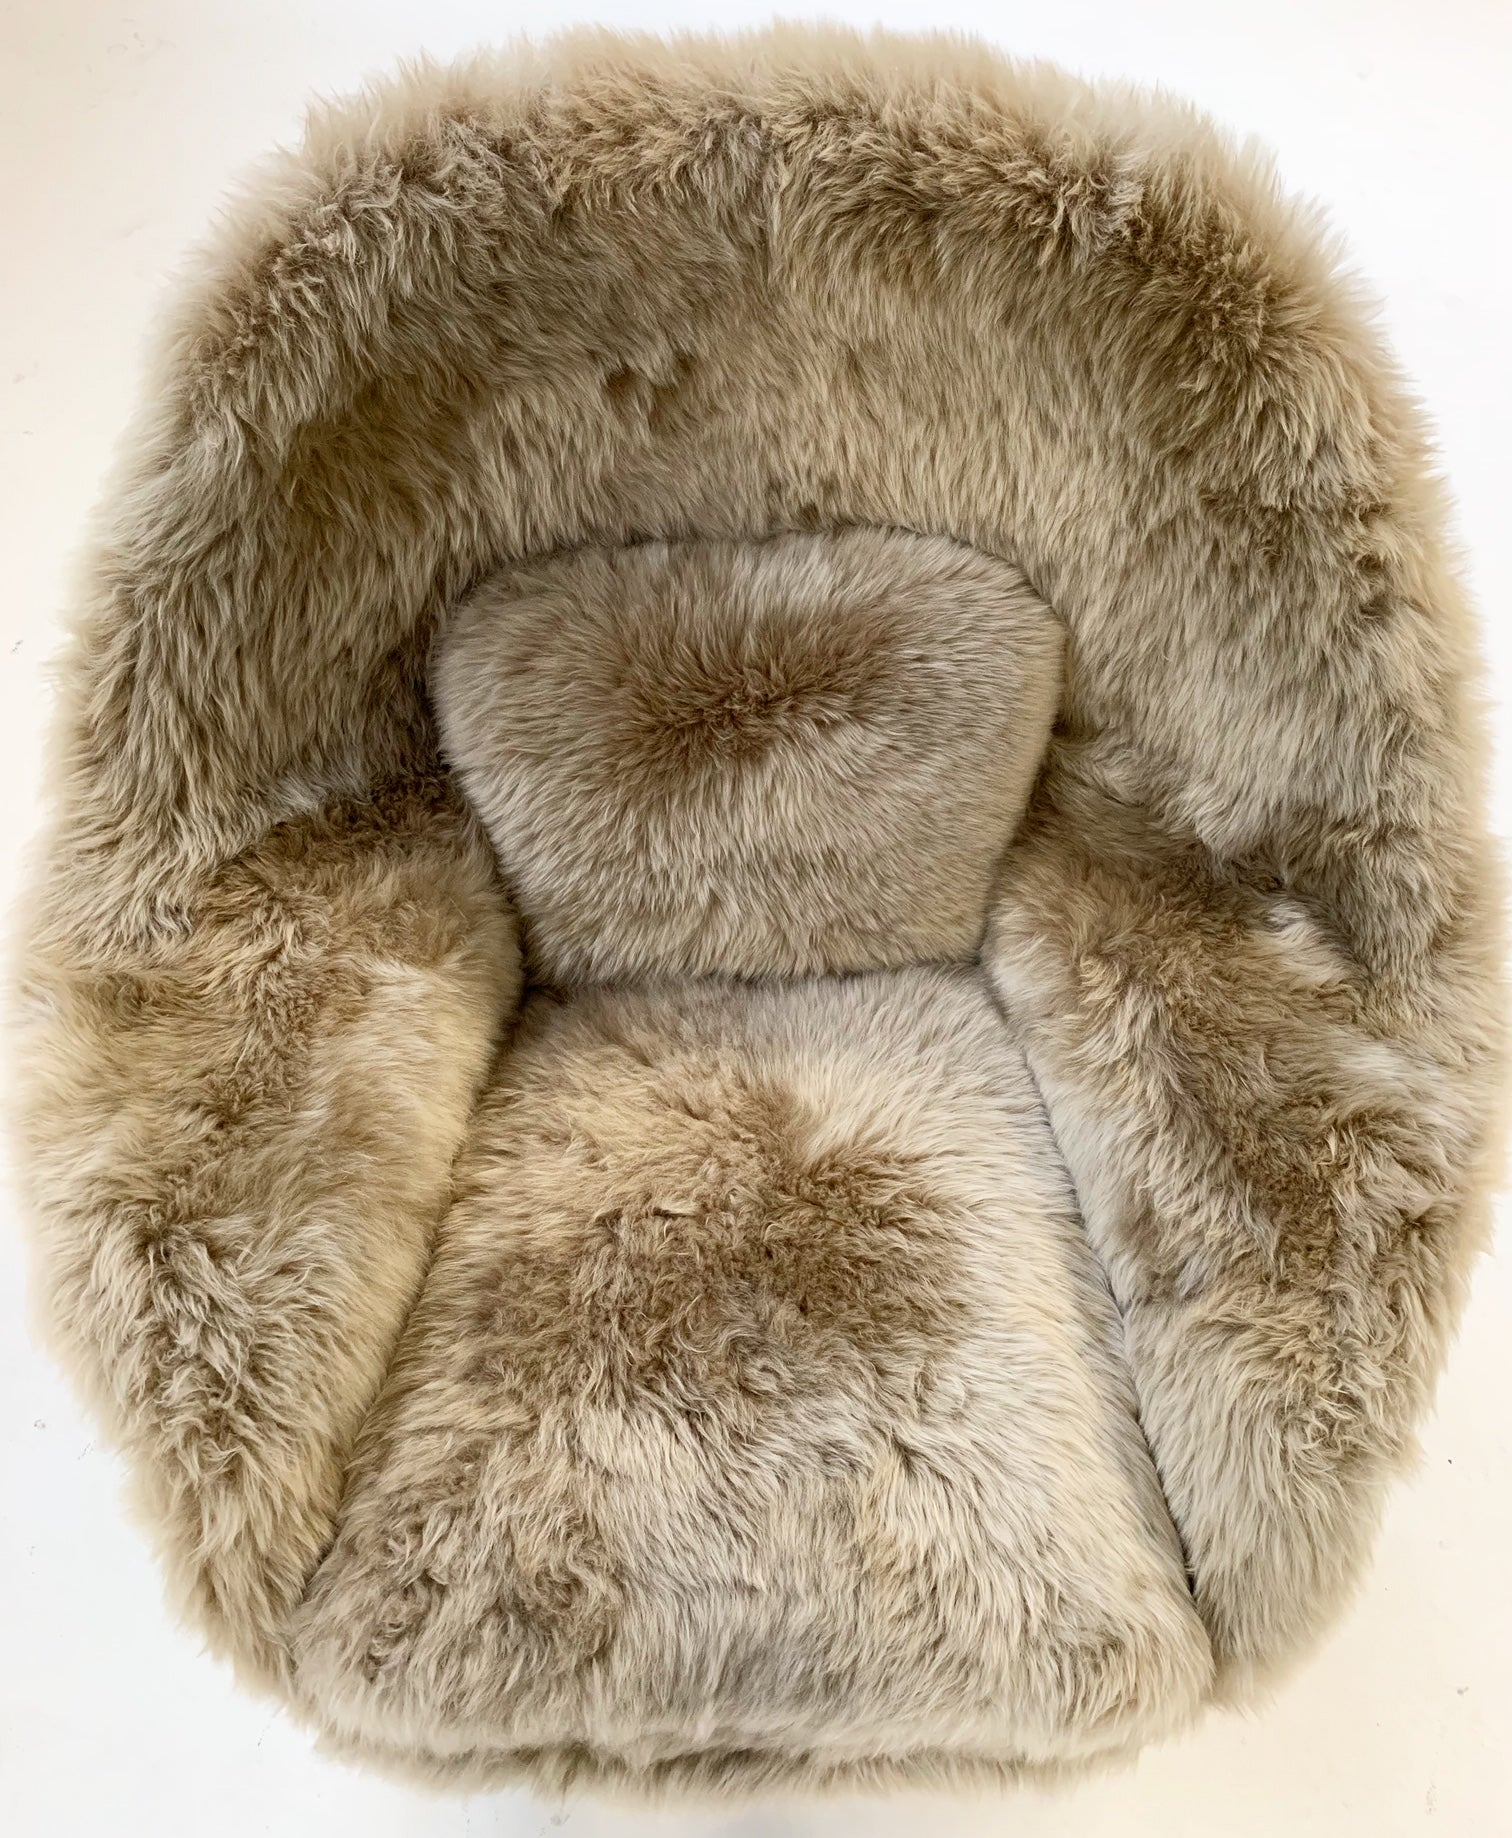 Womb Chair in New Zealand Sheepskin - FORSYTH